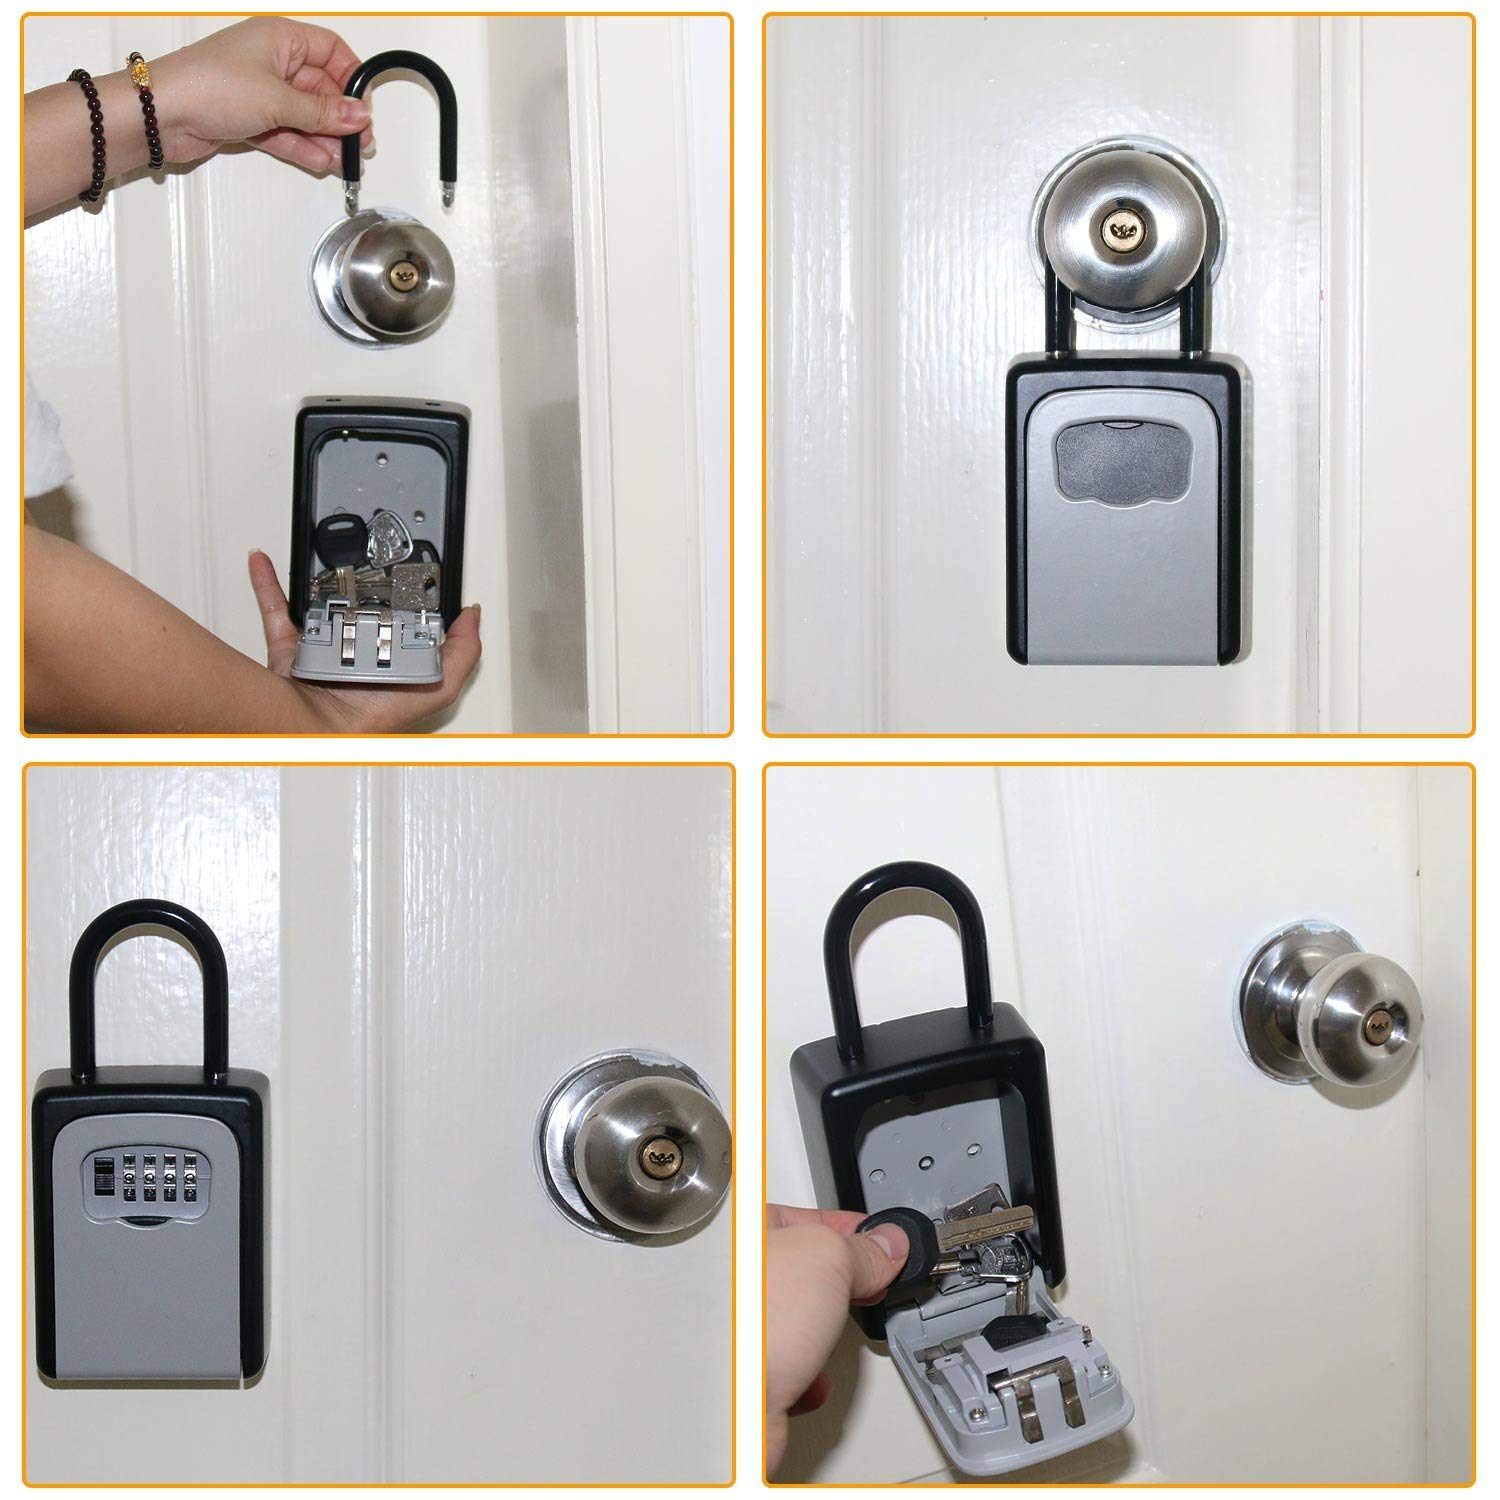 Key Lock Box Wall Mount Key Lock Boxes Aluminum Alloy 4-Digit Combination Key Storage Lock Box Weatherproof for Outdoor Indoor realtor wall mount key lock box with 10 digit push button combination is weather resistant for indoors or outdoors